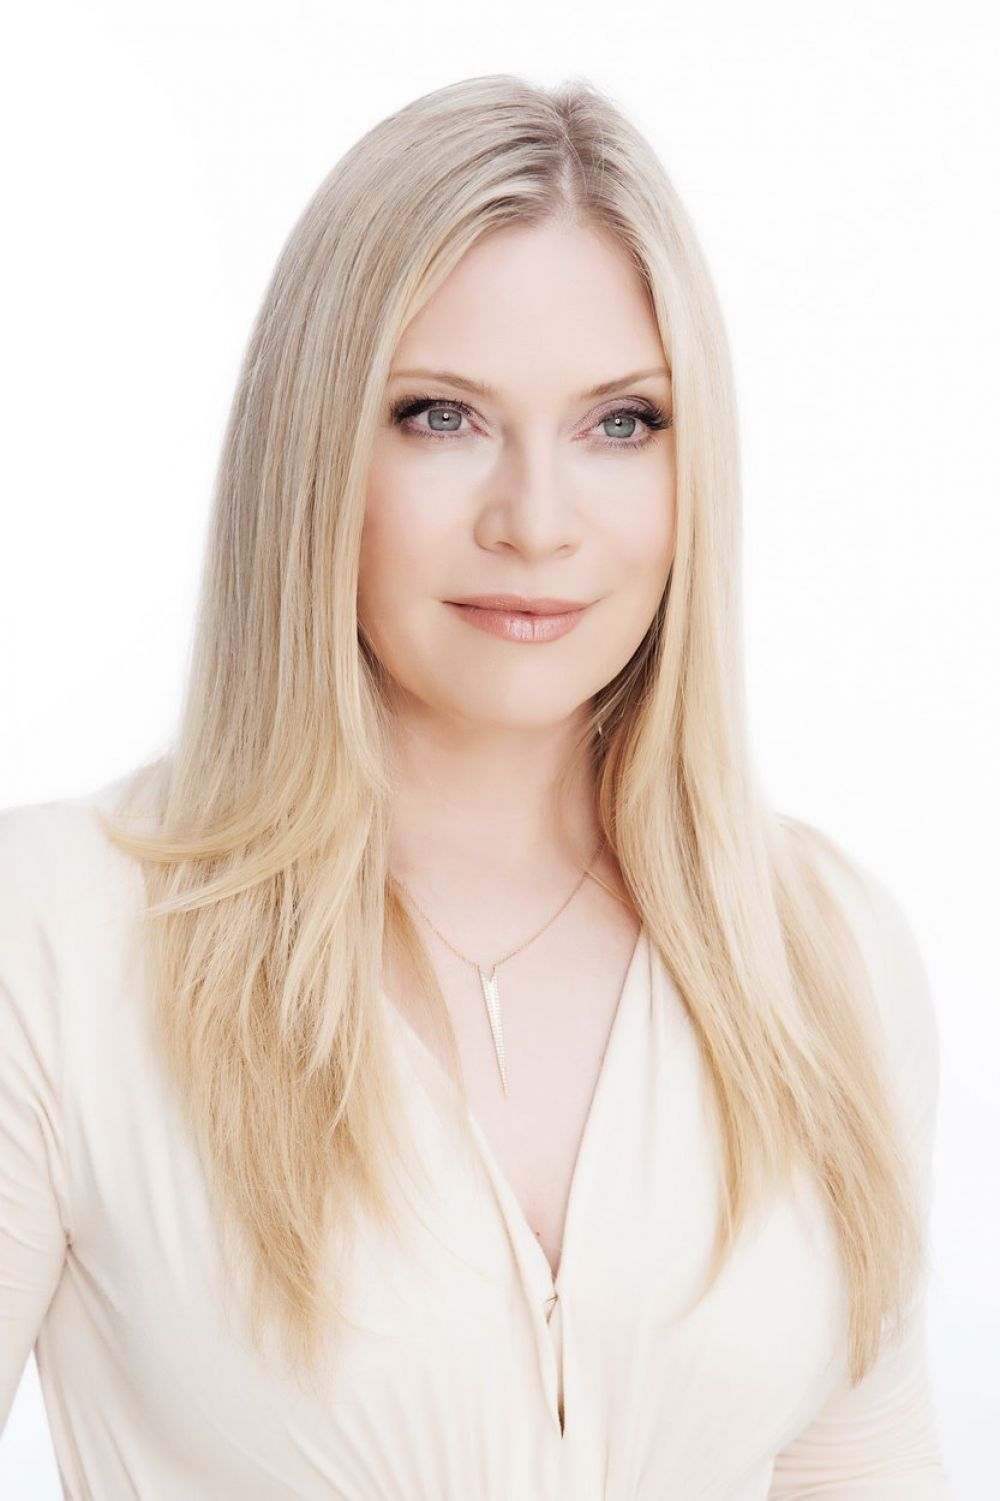 emily procter 2014emily procter csi, emily procter foto, emily procter colgate, emily procter ig, emily procter no makeup, emily procter who dated who, emily procter, emily procter 2015, emily procter net worth, emily procter wiki, emily procter husband, emily procter 2014, emily procter white collar, emily procter bio, emily procter instagram, emily procter plastic surgery